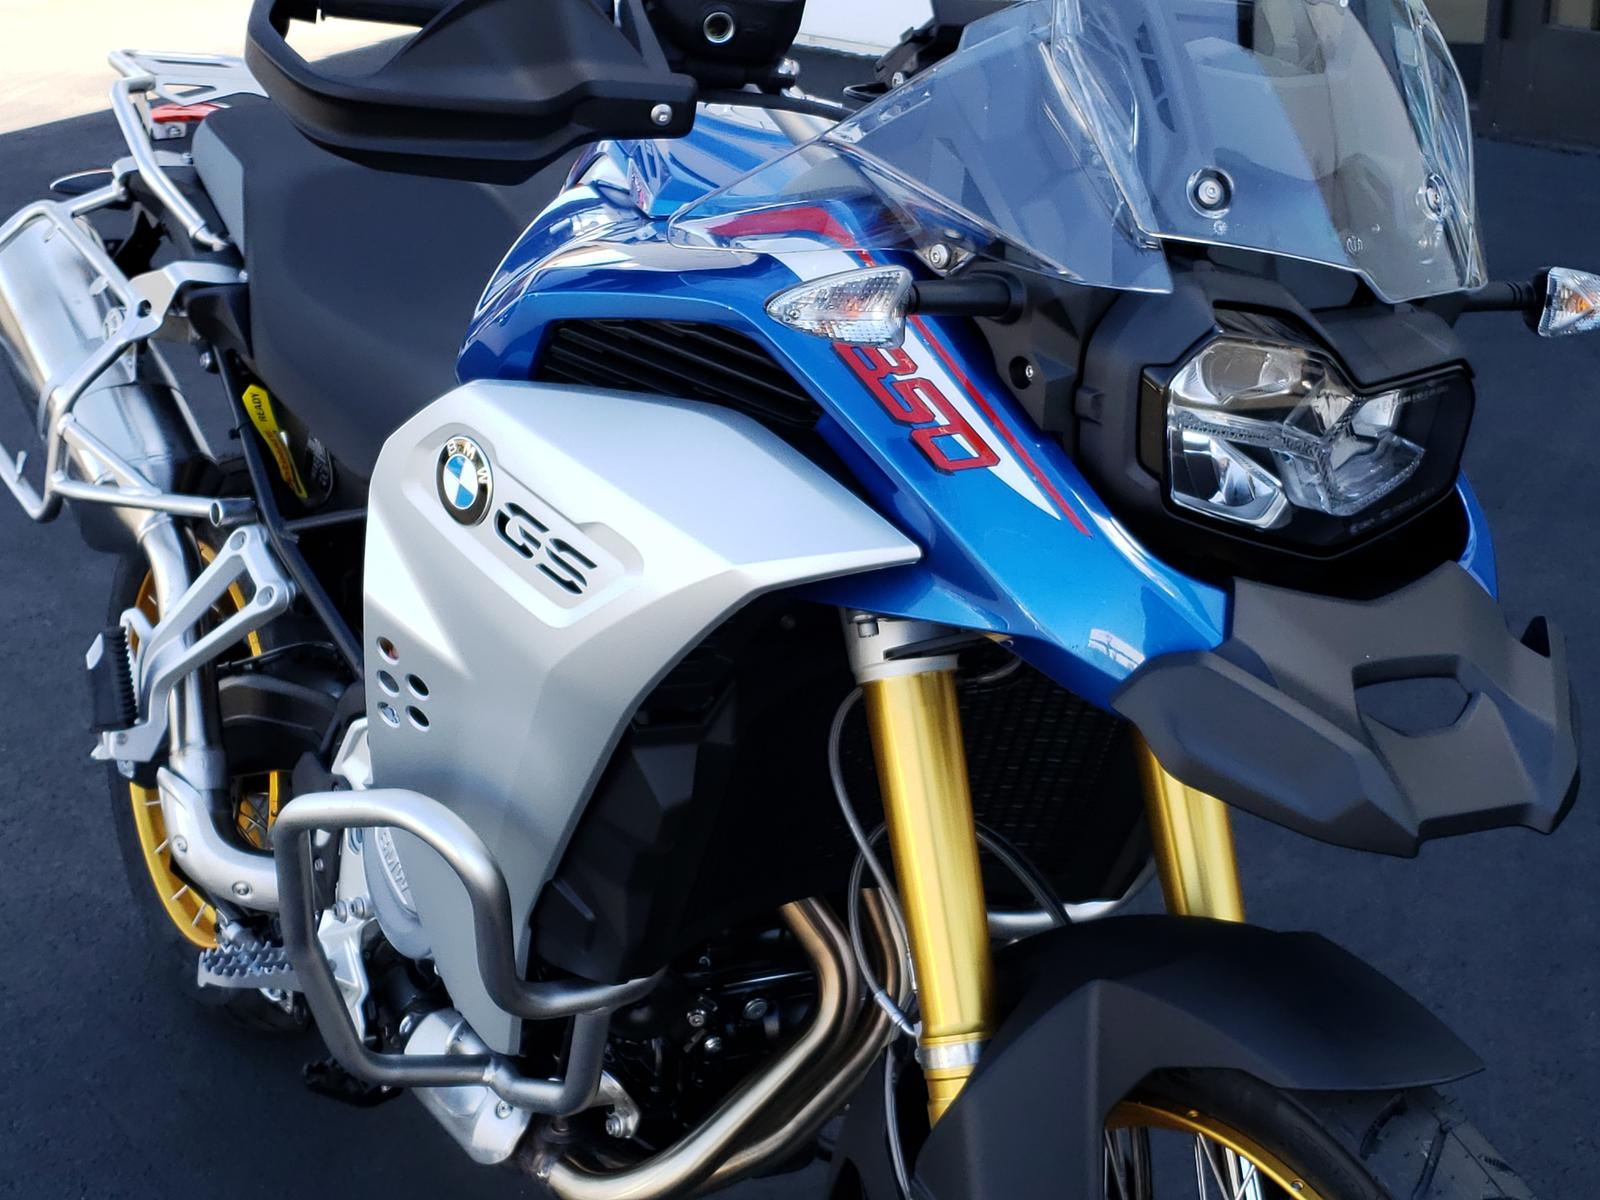 Awe Inspiring 2019 Bmw F 850 Gs Adventure Rally For Sale In Las Vegas Nv Unemploymentrelief Wooden Chair Designs For Living Room Unemploymentrelieforg